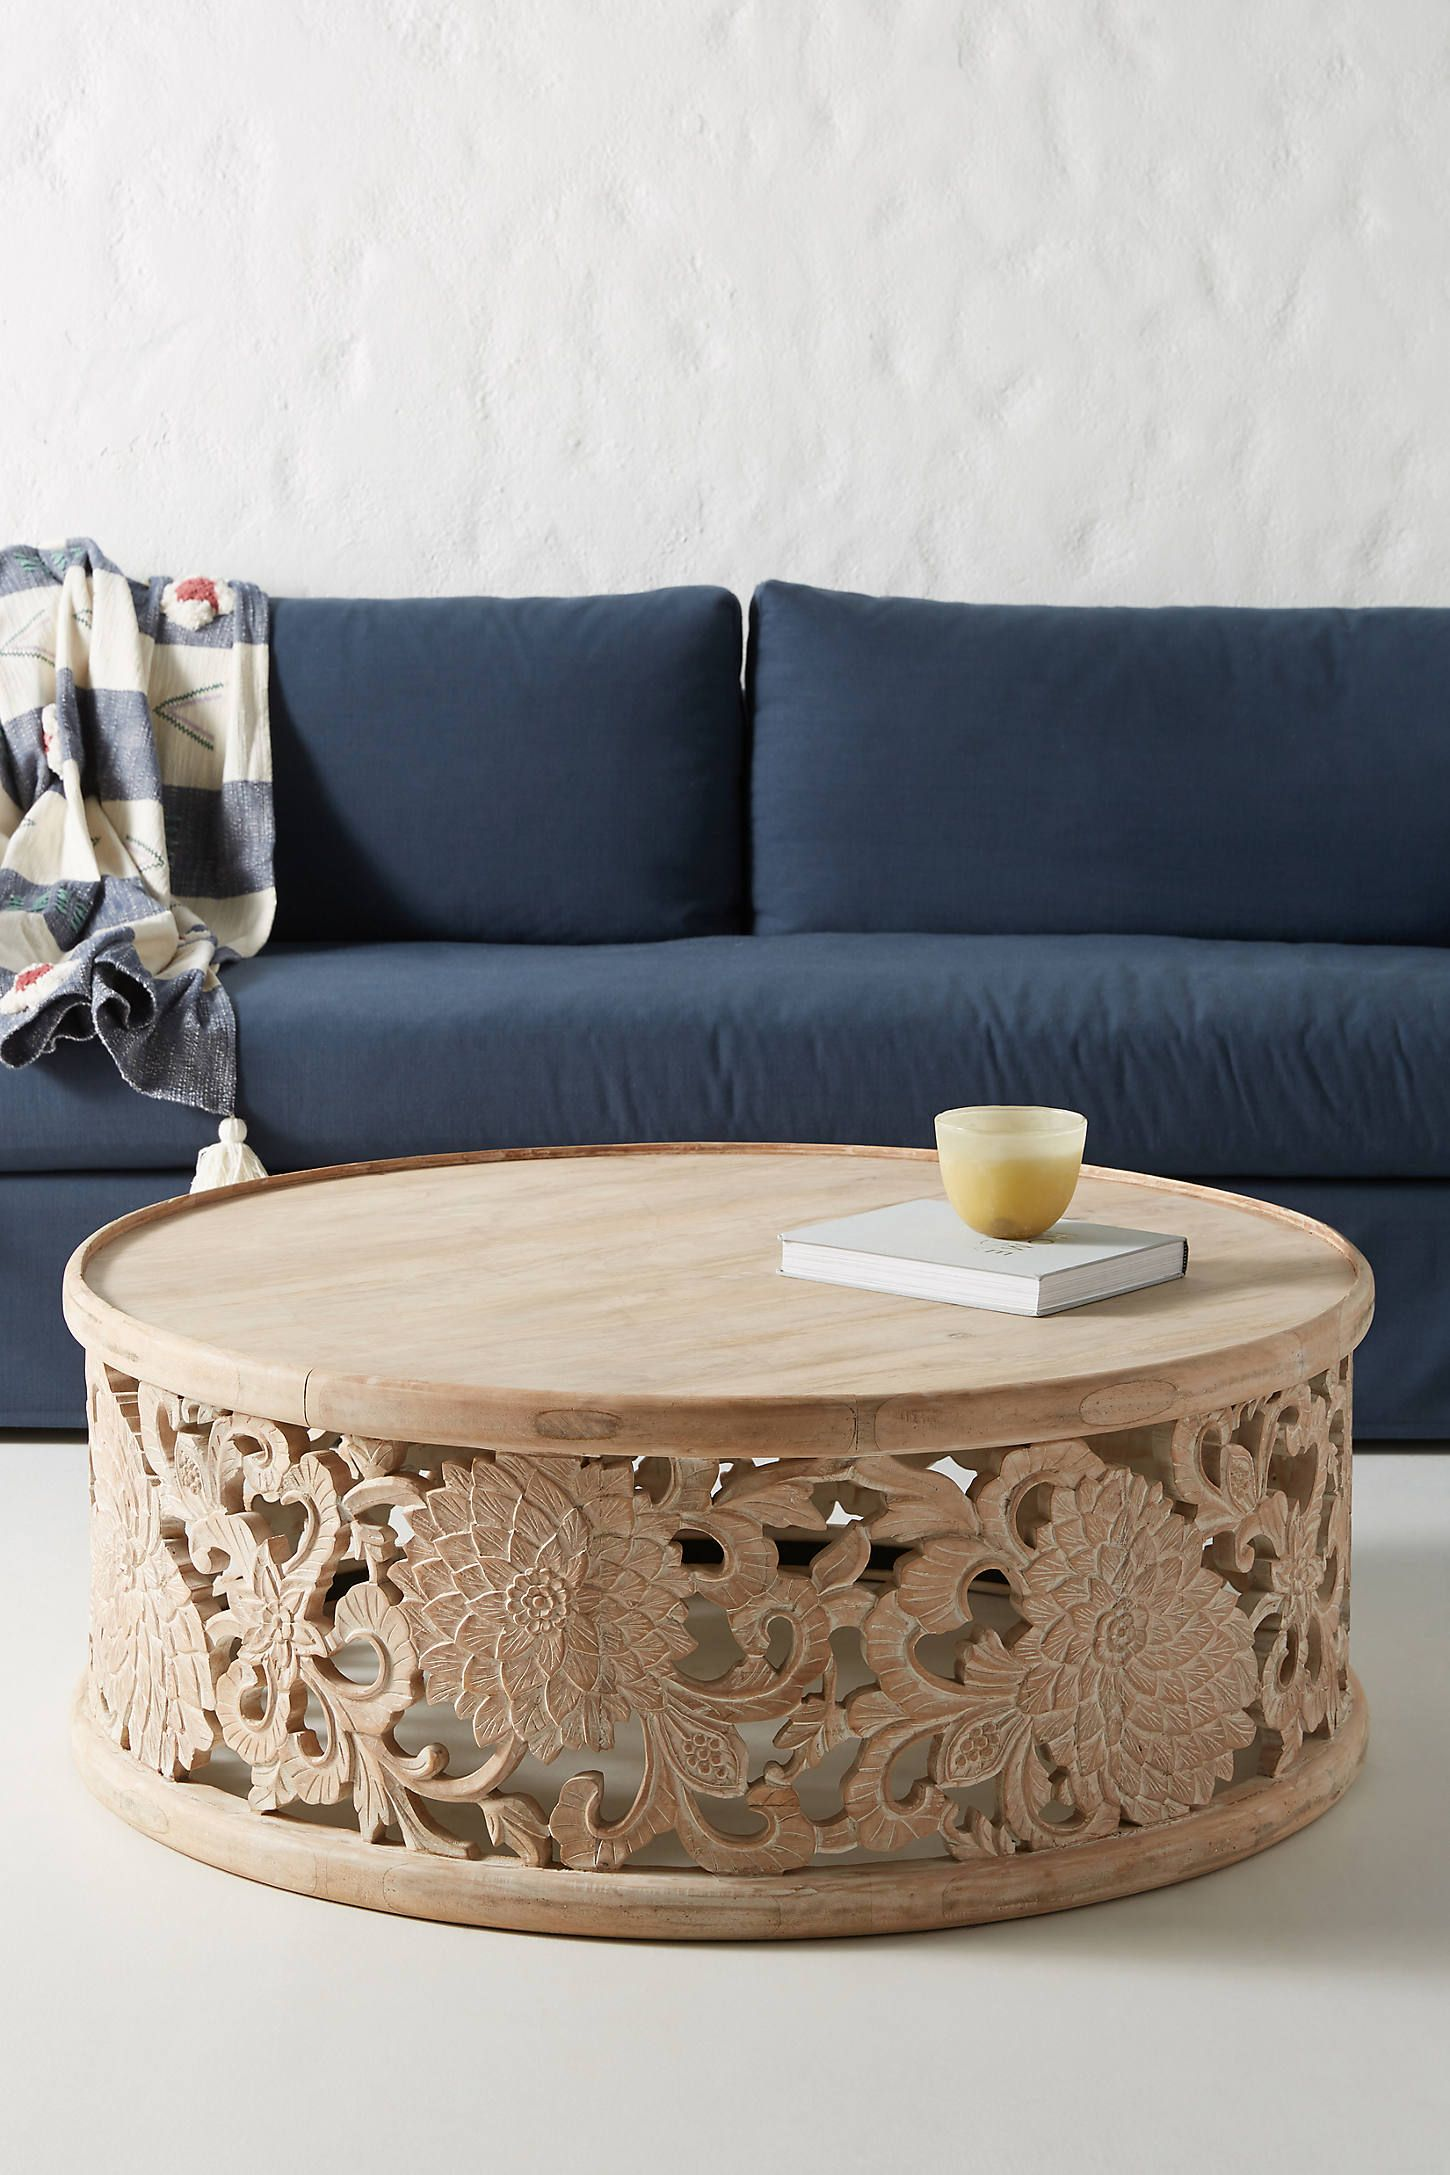 Handcarved Lotus Coffee Table Unique Coffee Table Coffee Table Design Coffee Table [ 2175 x 1450 Pixel ]